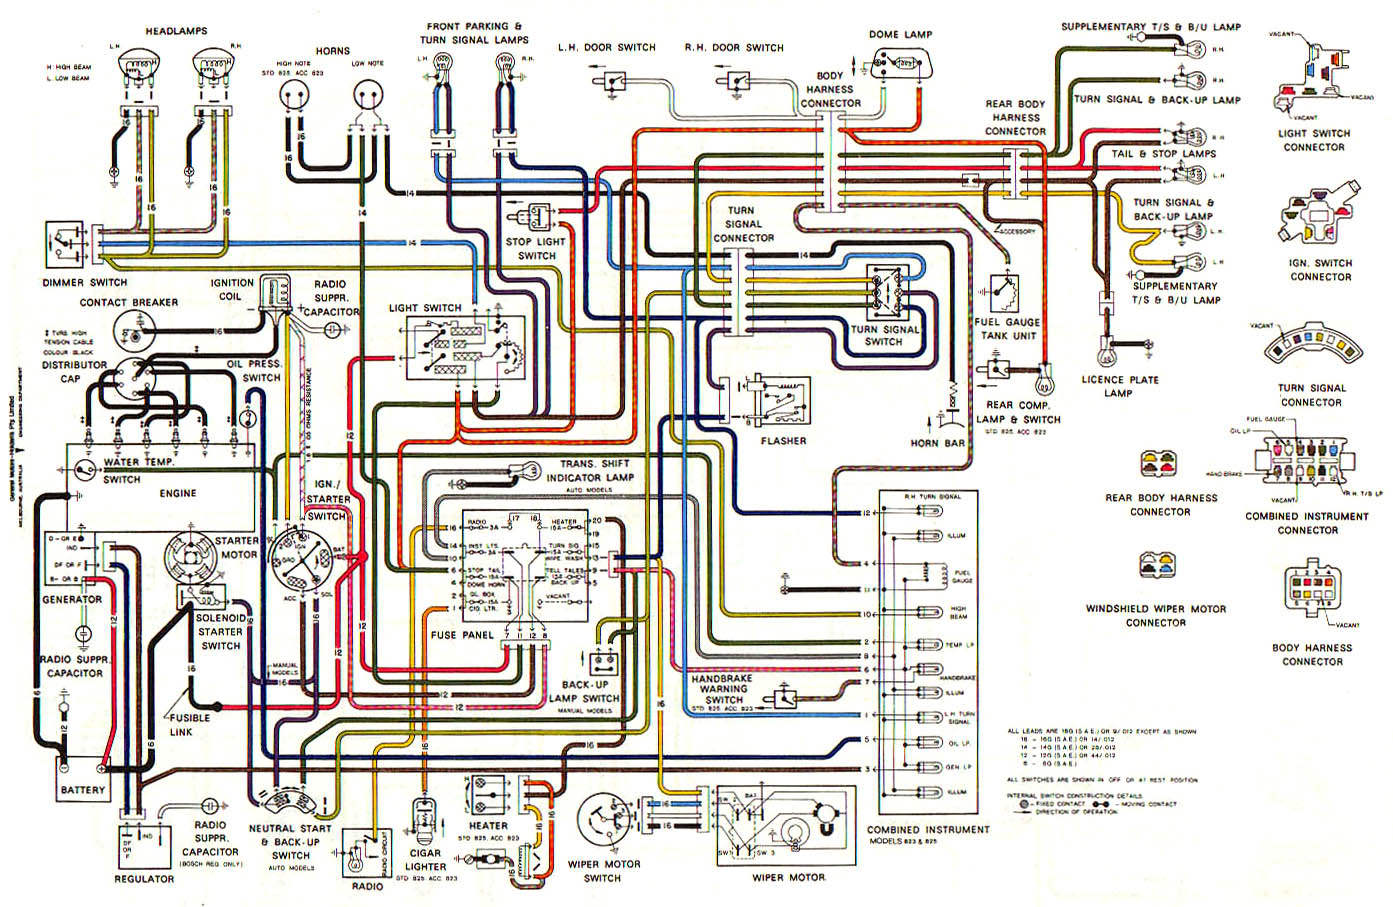 Hq Holden Wiring Diagram : Hq holden engine bay wiring diagram torzone org